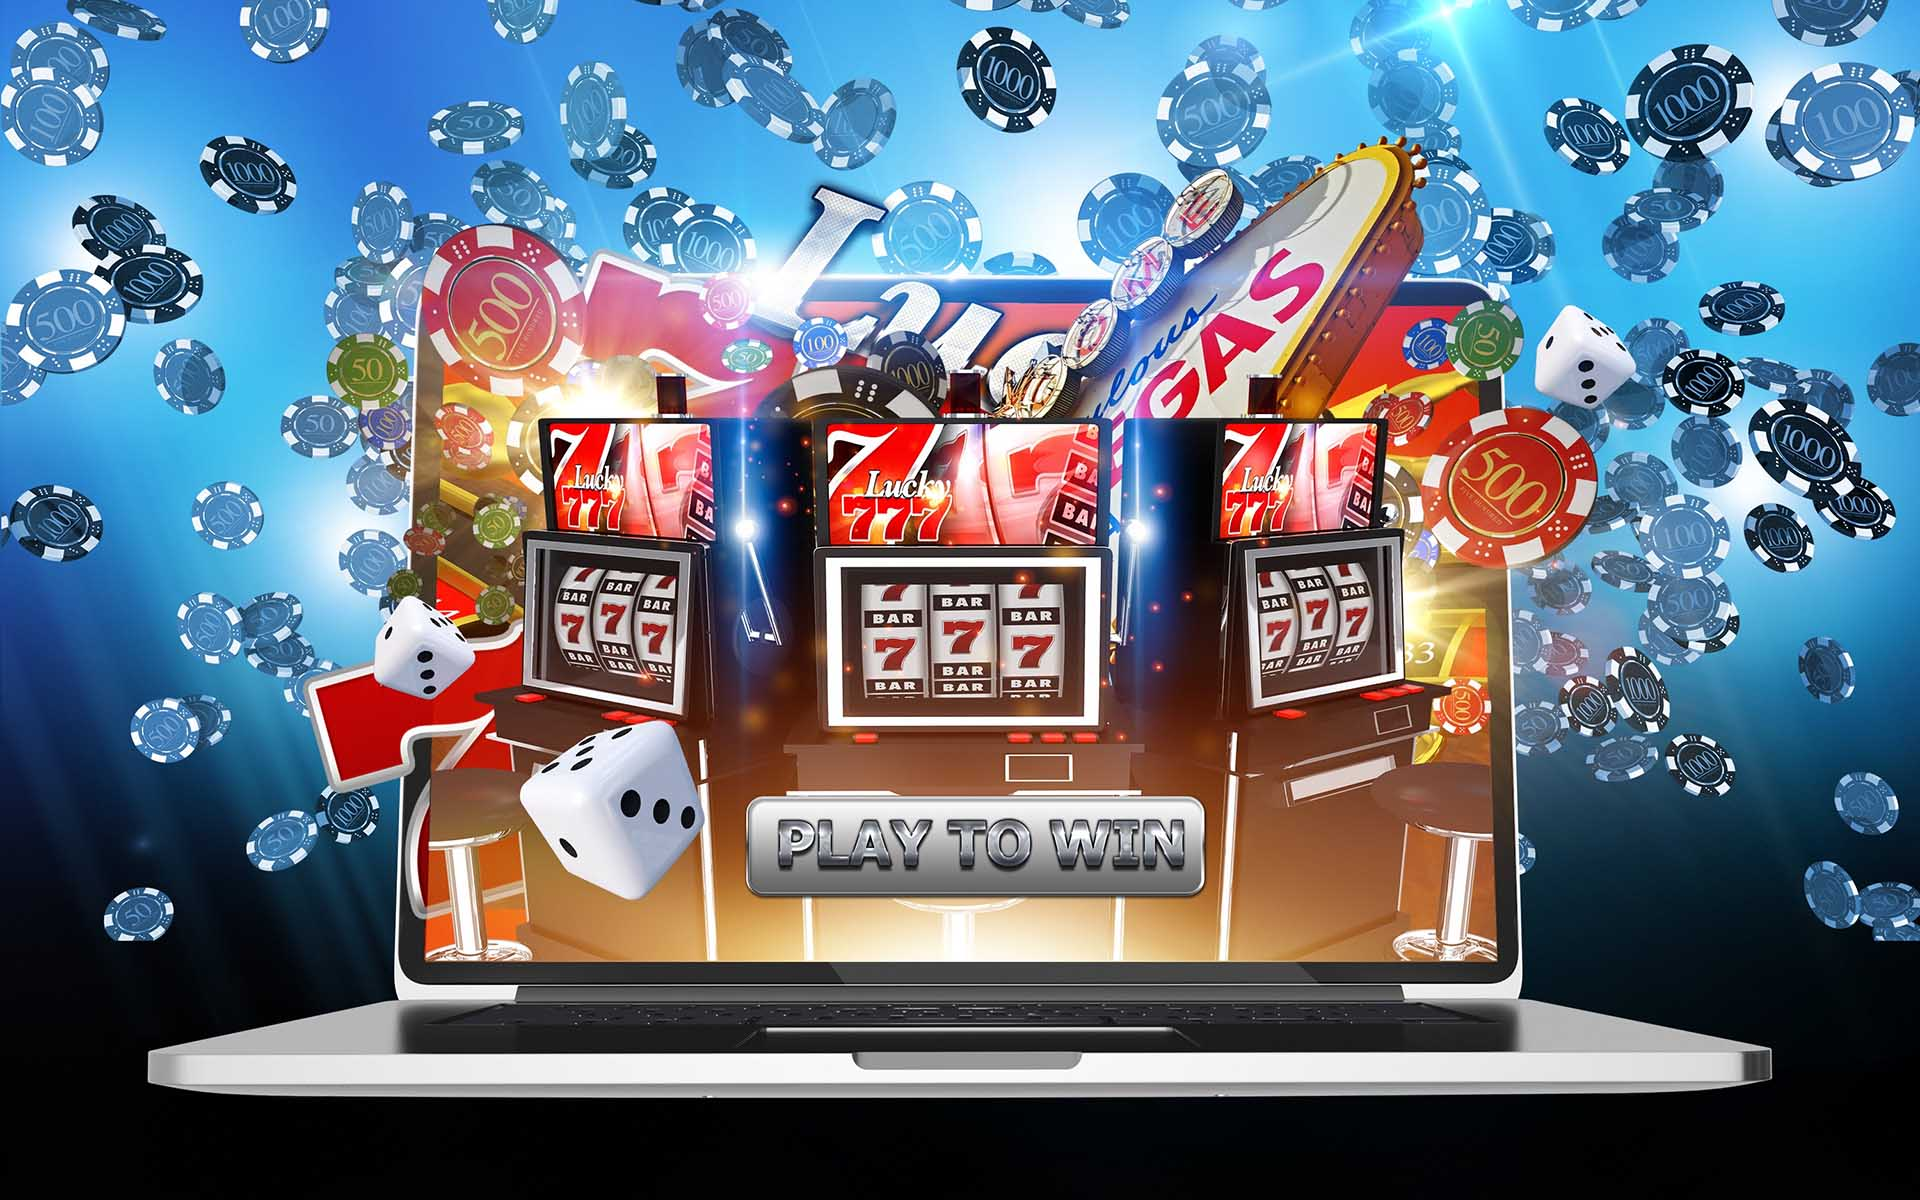 Online Gambling Site Offers up to $4,000 in Total Casino Welcome Bonus